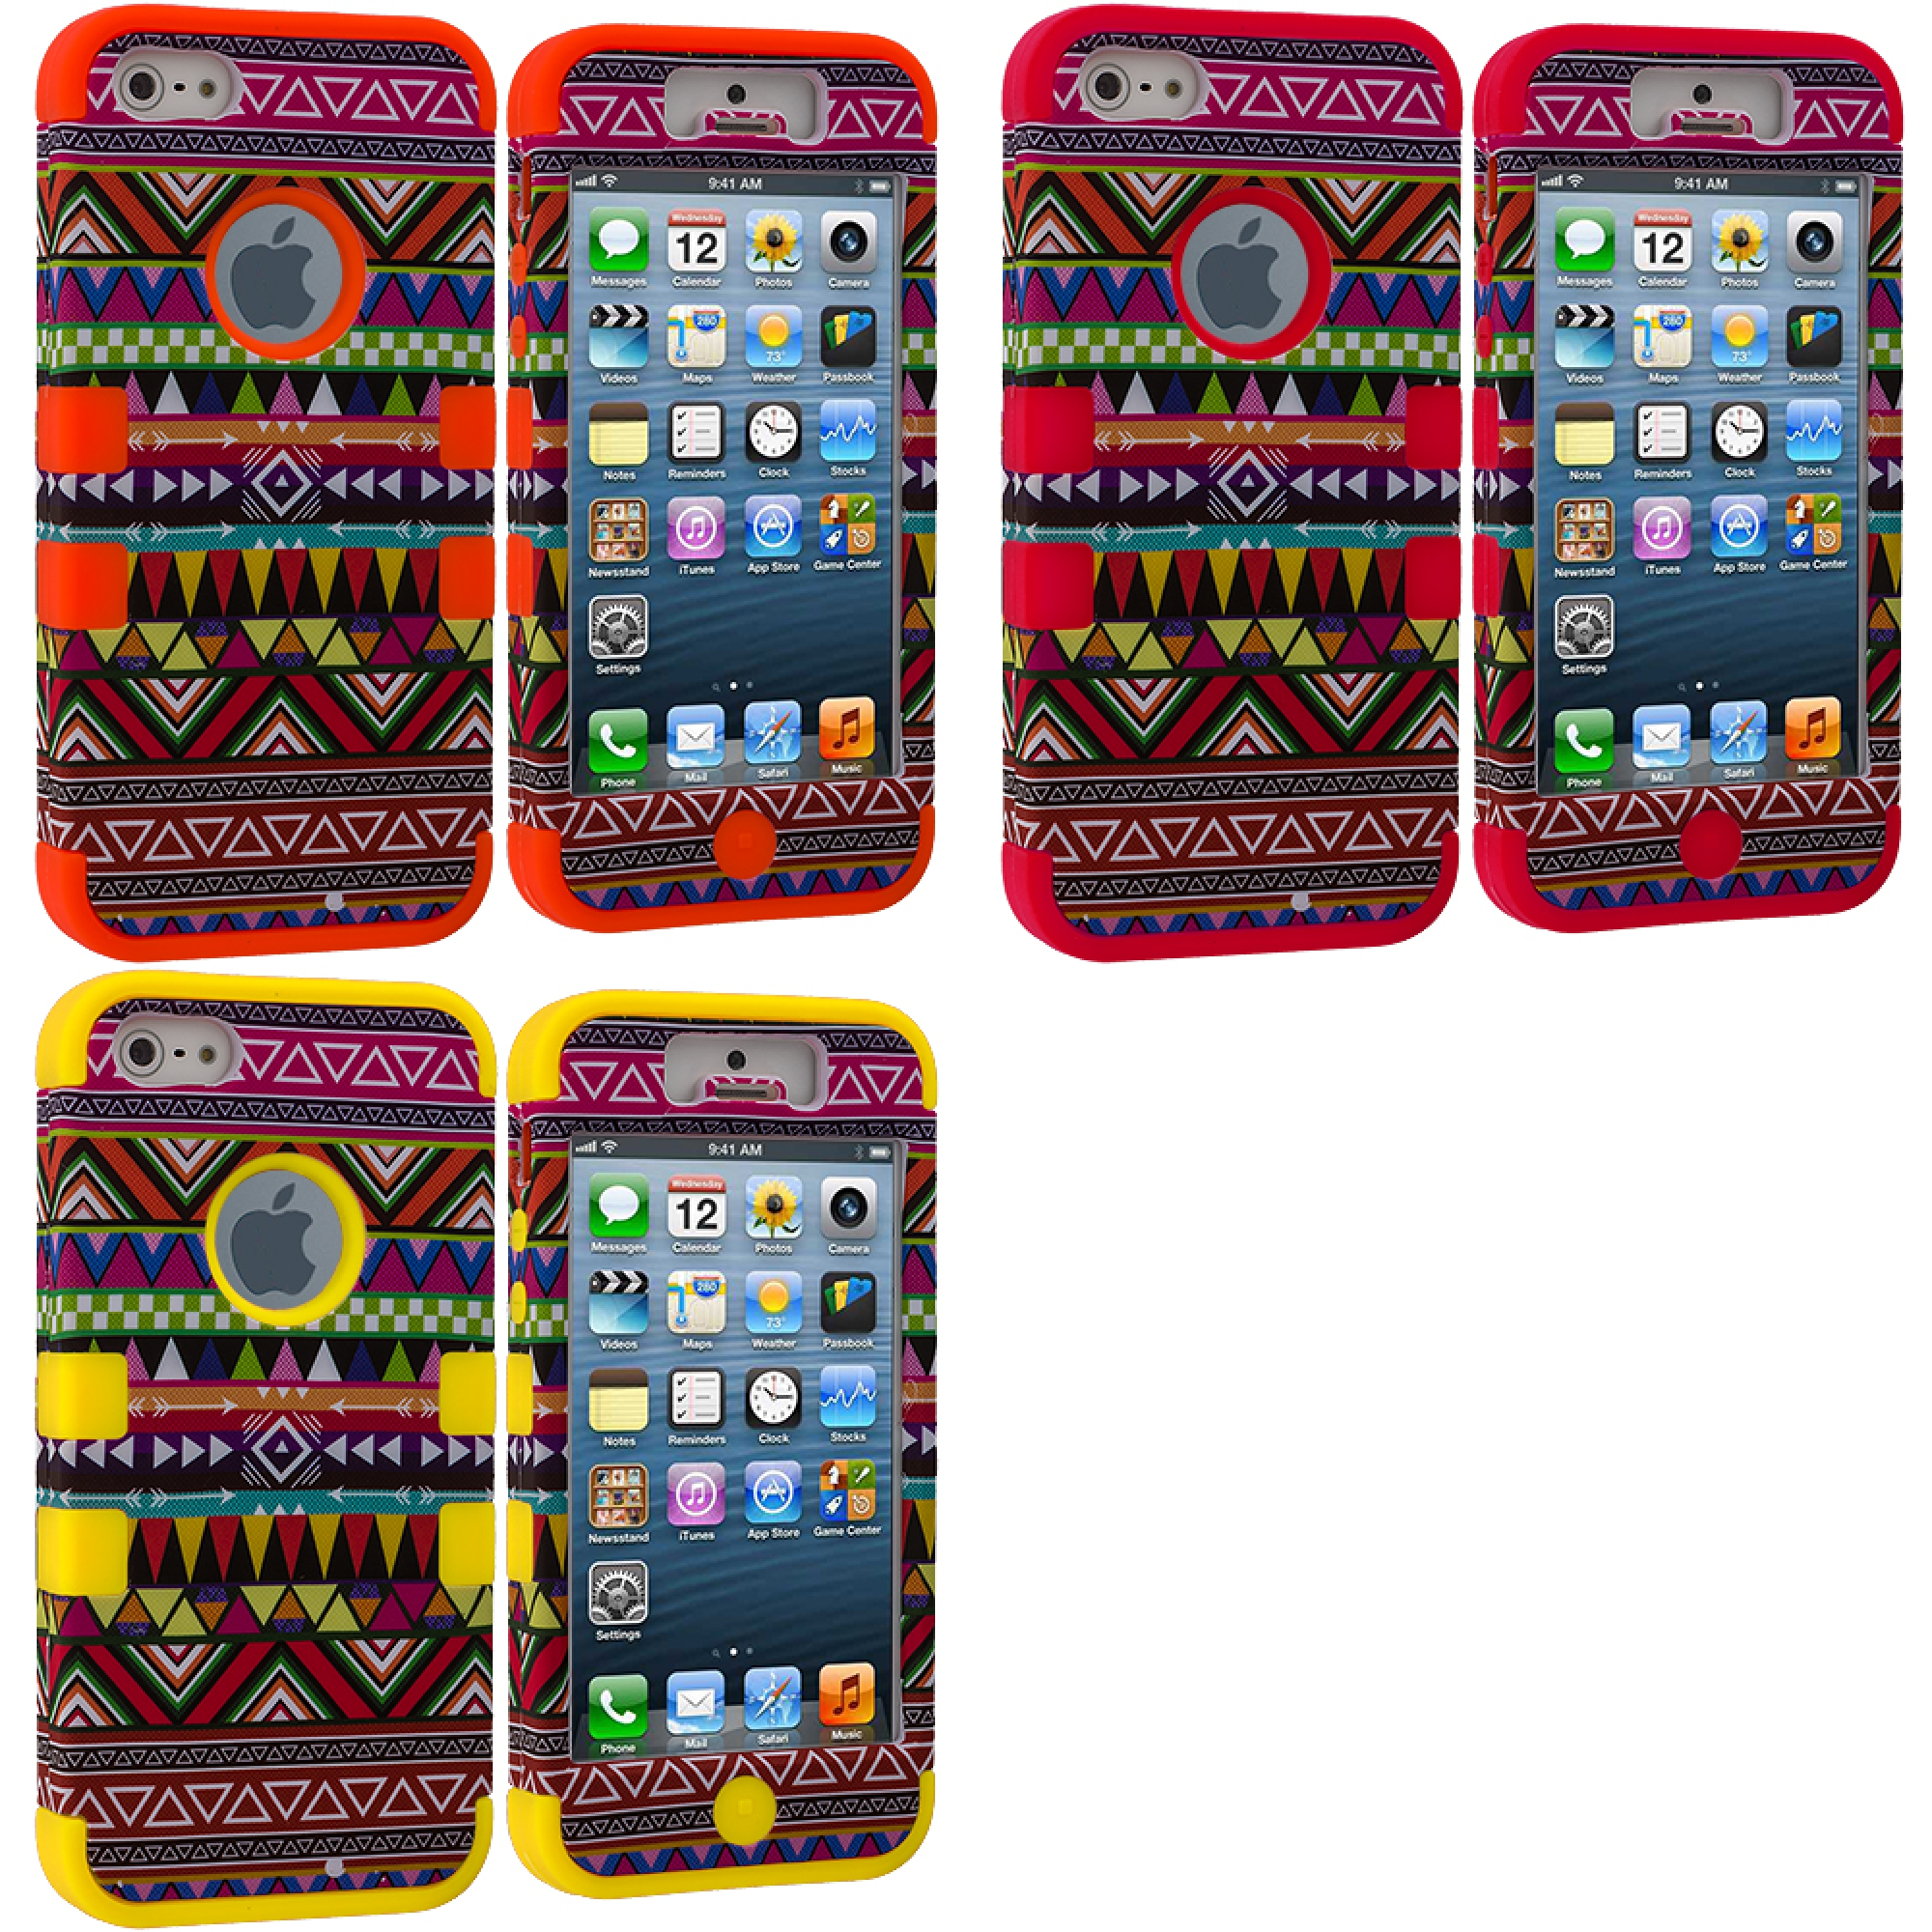 Apple iPhone 5/5S/SE Combo Pack : Red Tribal Hybrid Tuff Hard/Soft 3-Piece Case Cover